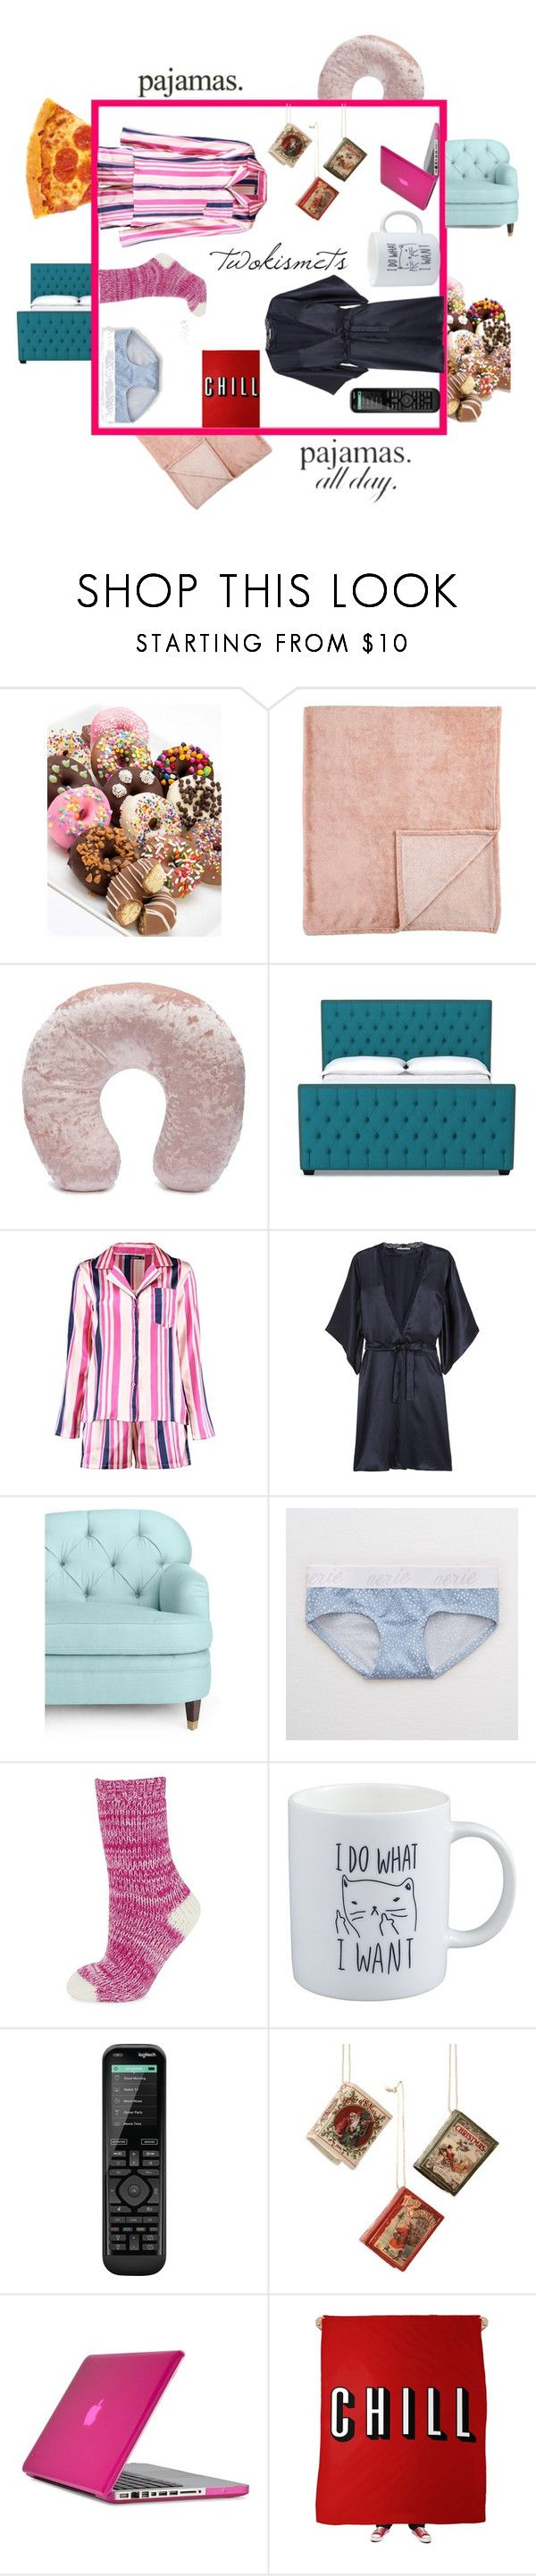 """#mypajamaday"" by twokismets ❤ liked on Polyvore featuring Chocolate Covered Company, Forever 21, STELLA McCARTNEY, Kate Spade, Aerie, HUE, Logitech, Speck, twokismets and LovelyLoungewear"